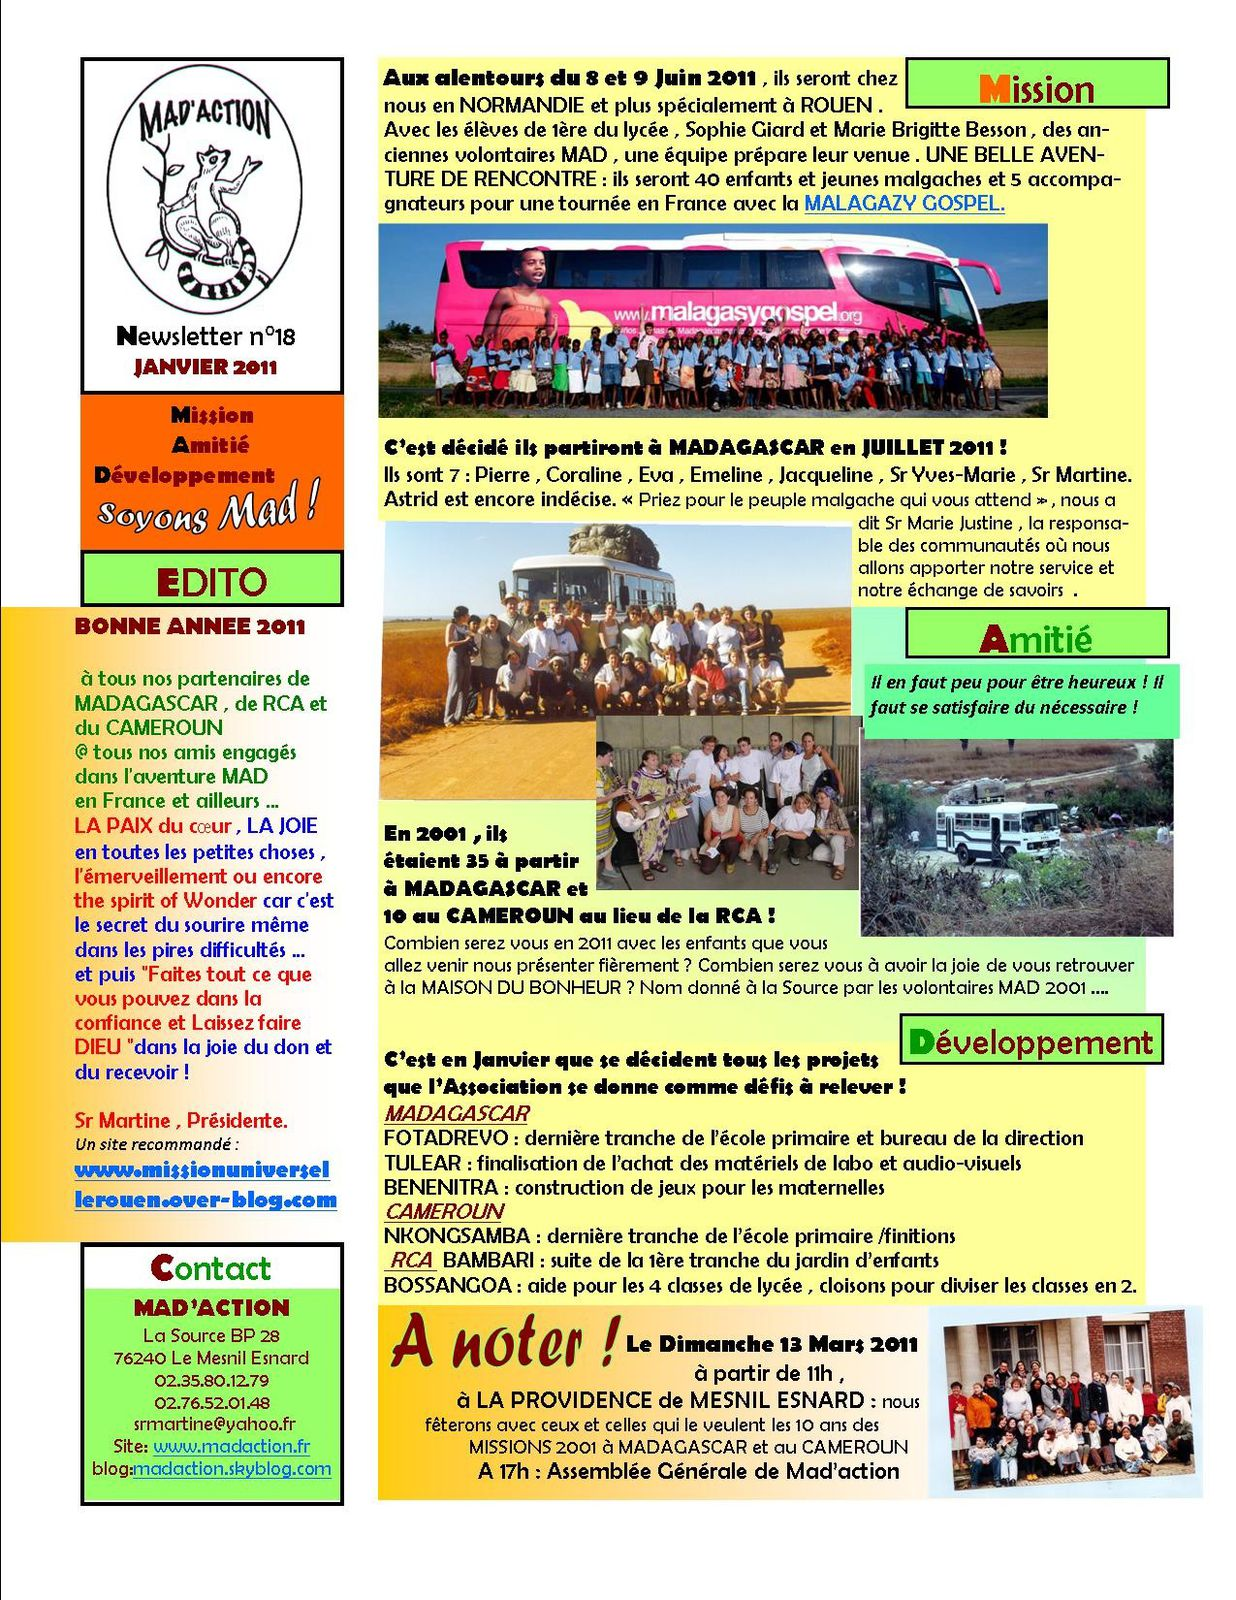 Newsletter MAD n°18 Janvier 2011